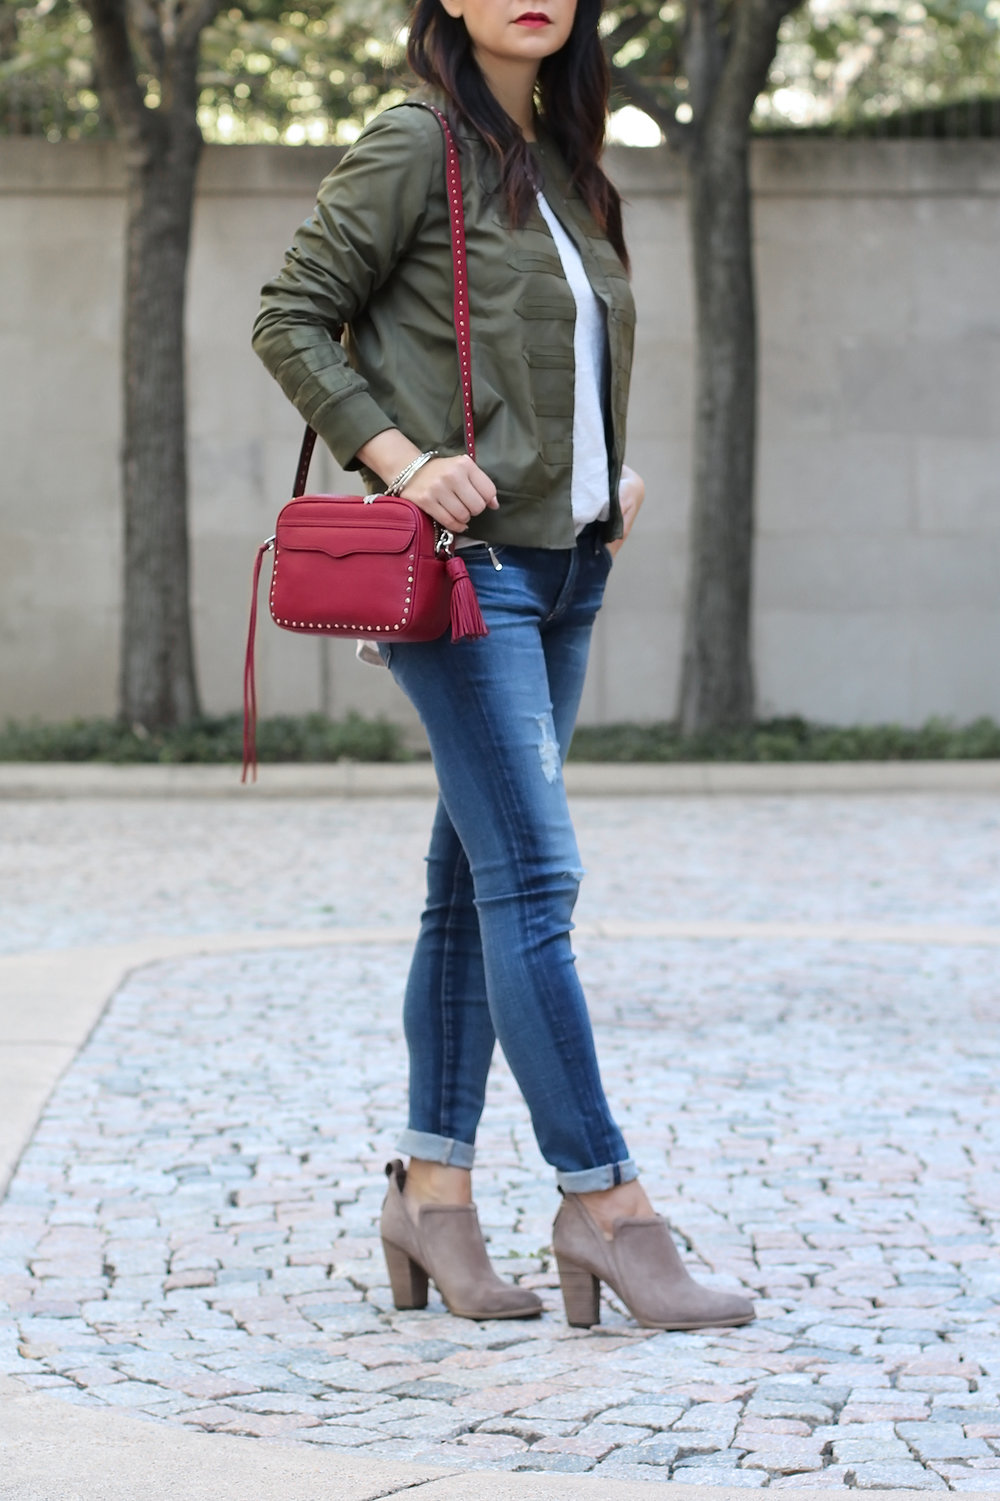 Military Bomber Jacket, AG Legging Jeans, Vince Camuto Ankle Boots, Rebecca Minkoff Camera Bag